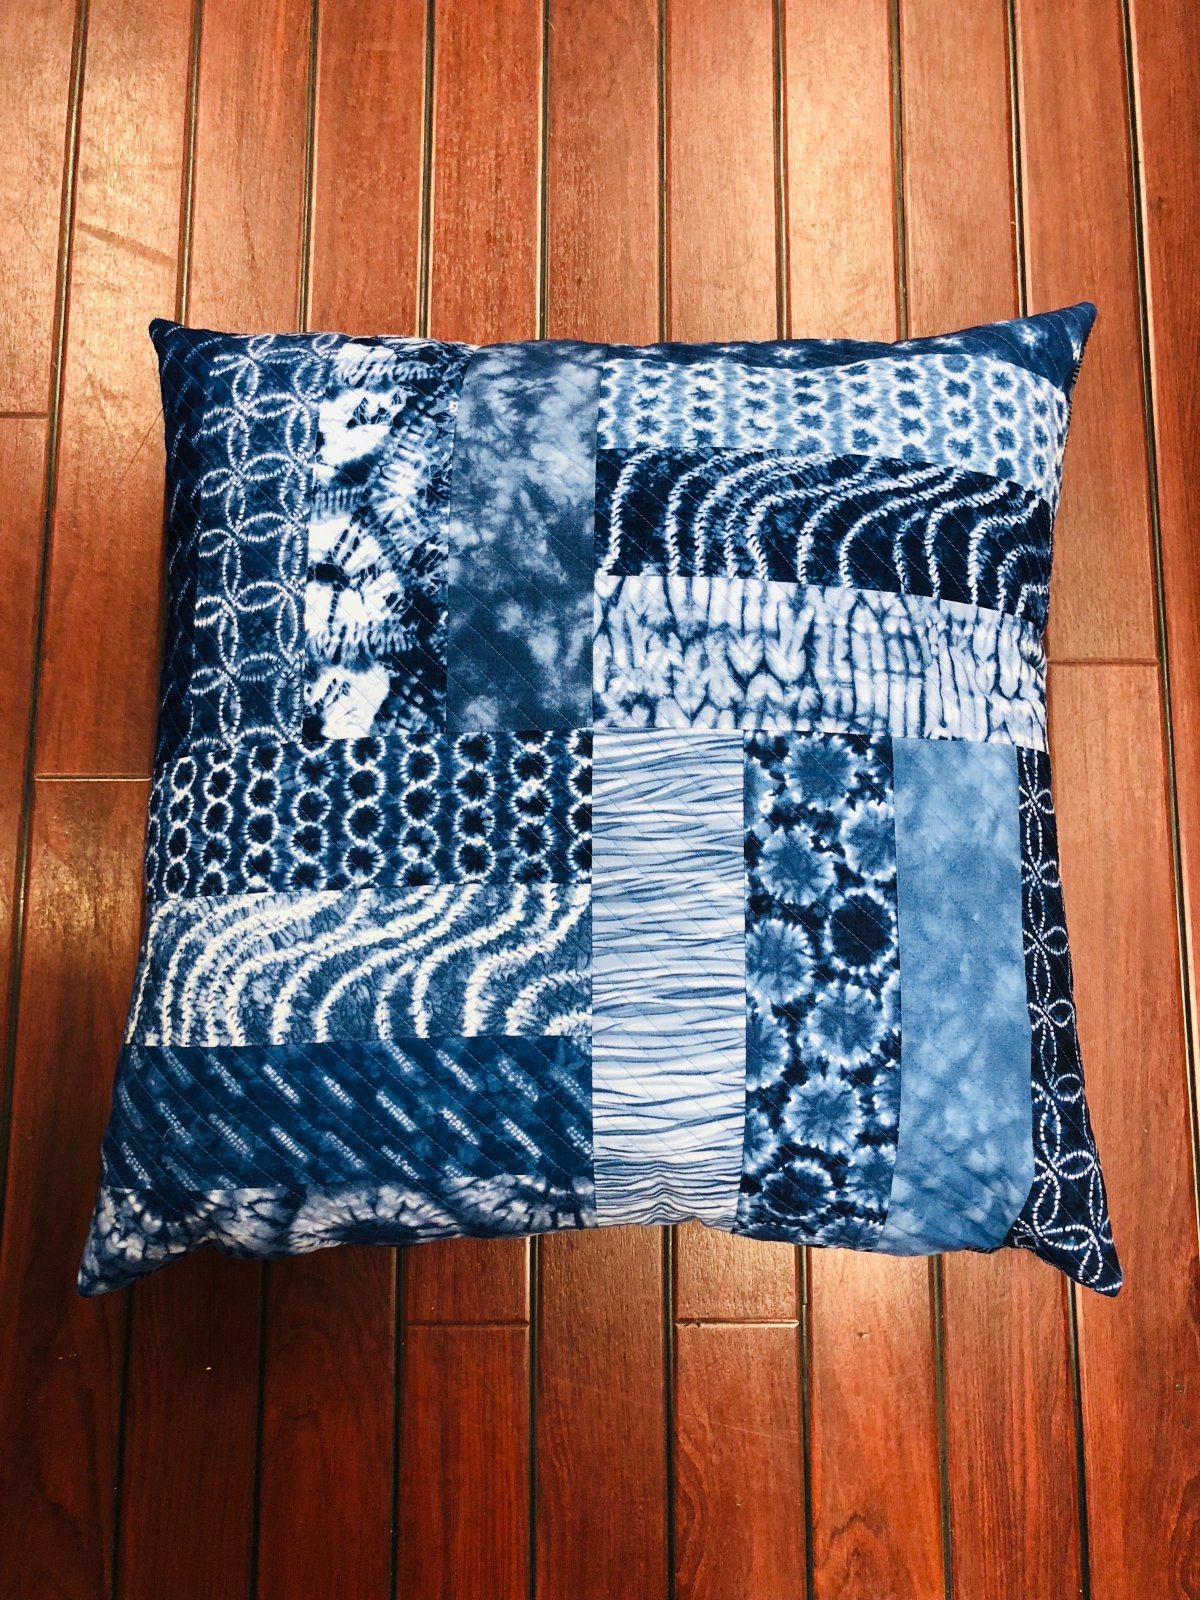 Rail House Blues Cushion Kit